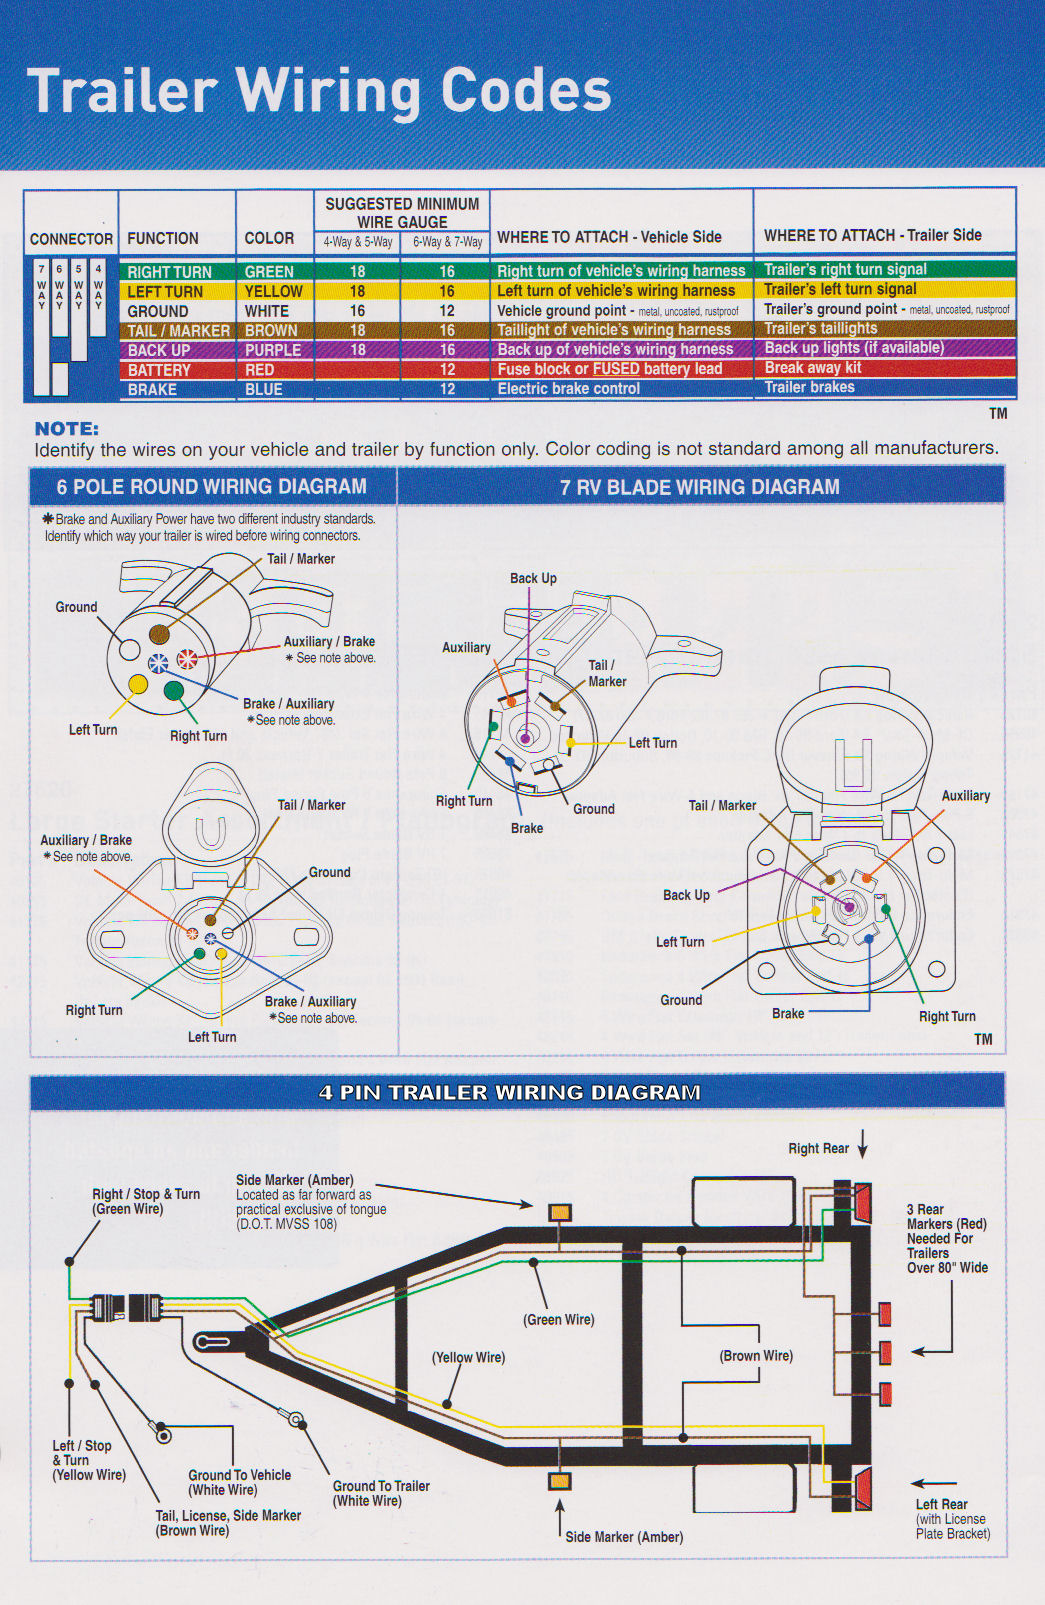 Trailer Wiring Diagram trailer wiring diagram we are the trailer pros! butler trailer wiring diagram at edmiracle.co